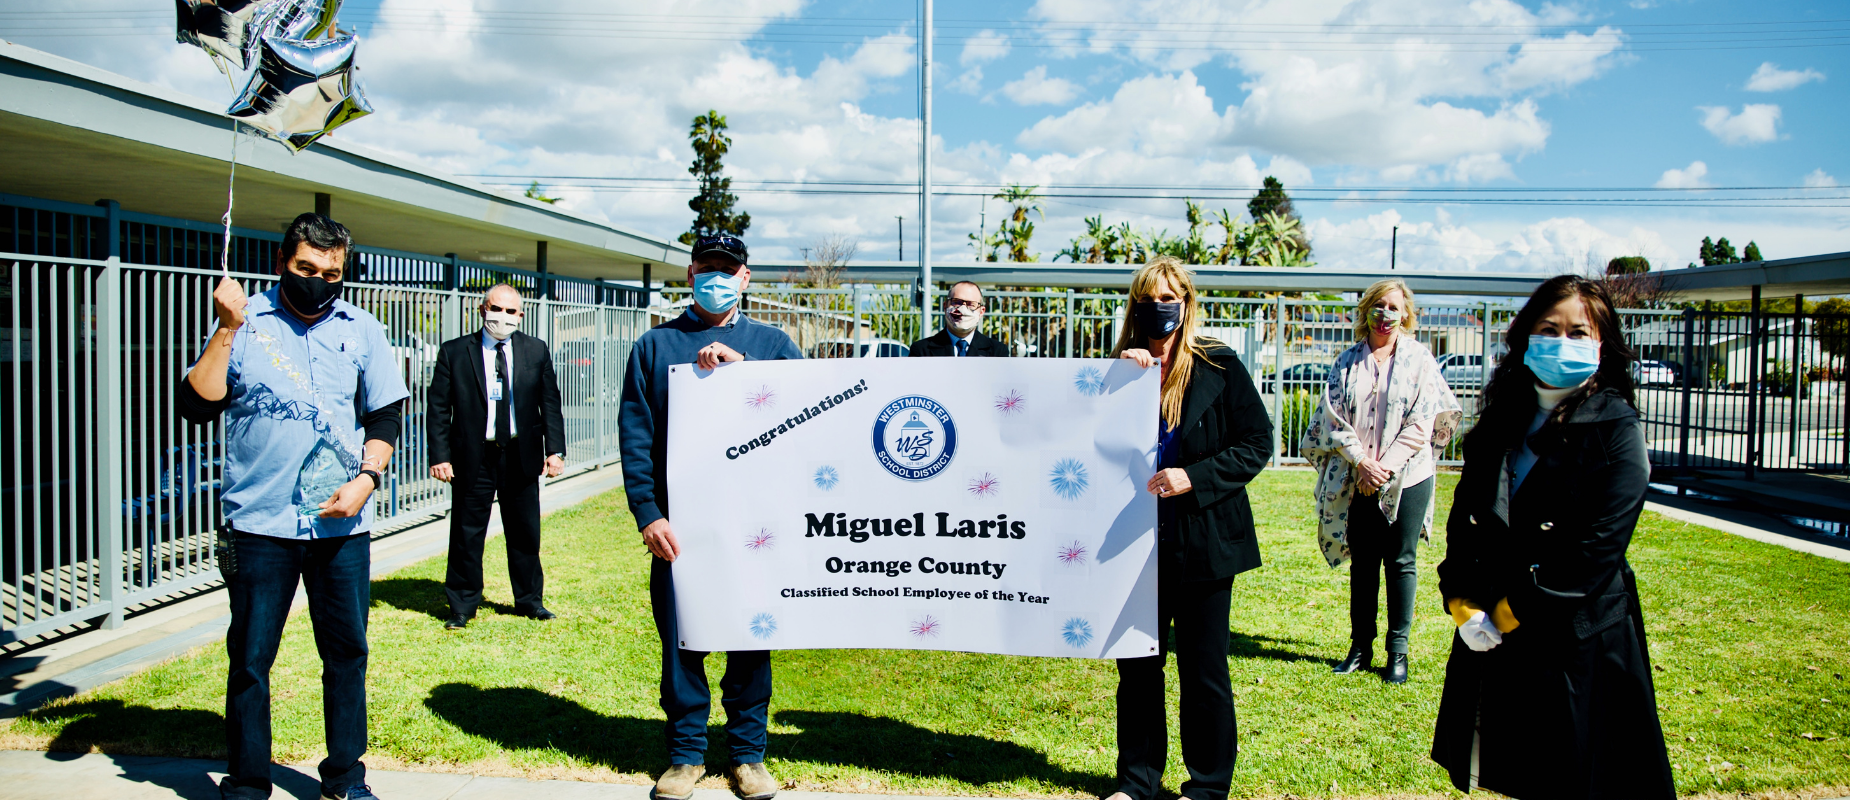 Miguel Laris Orange County Classified Employee of the Year